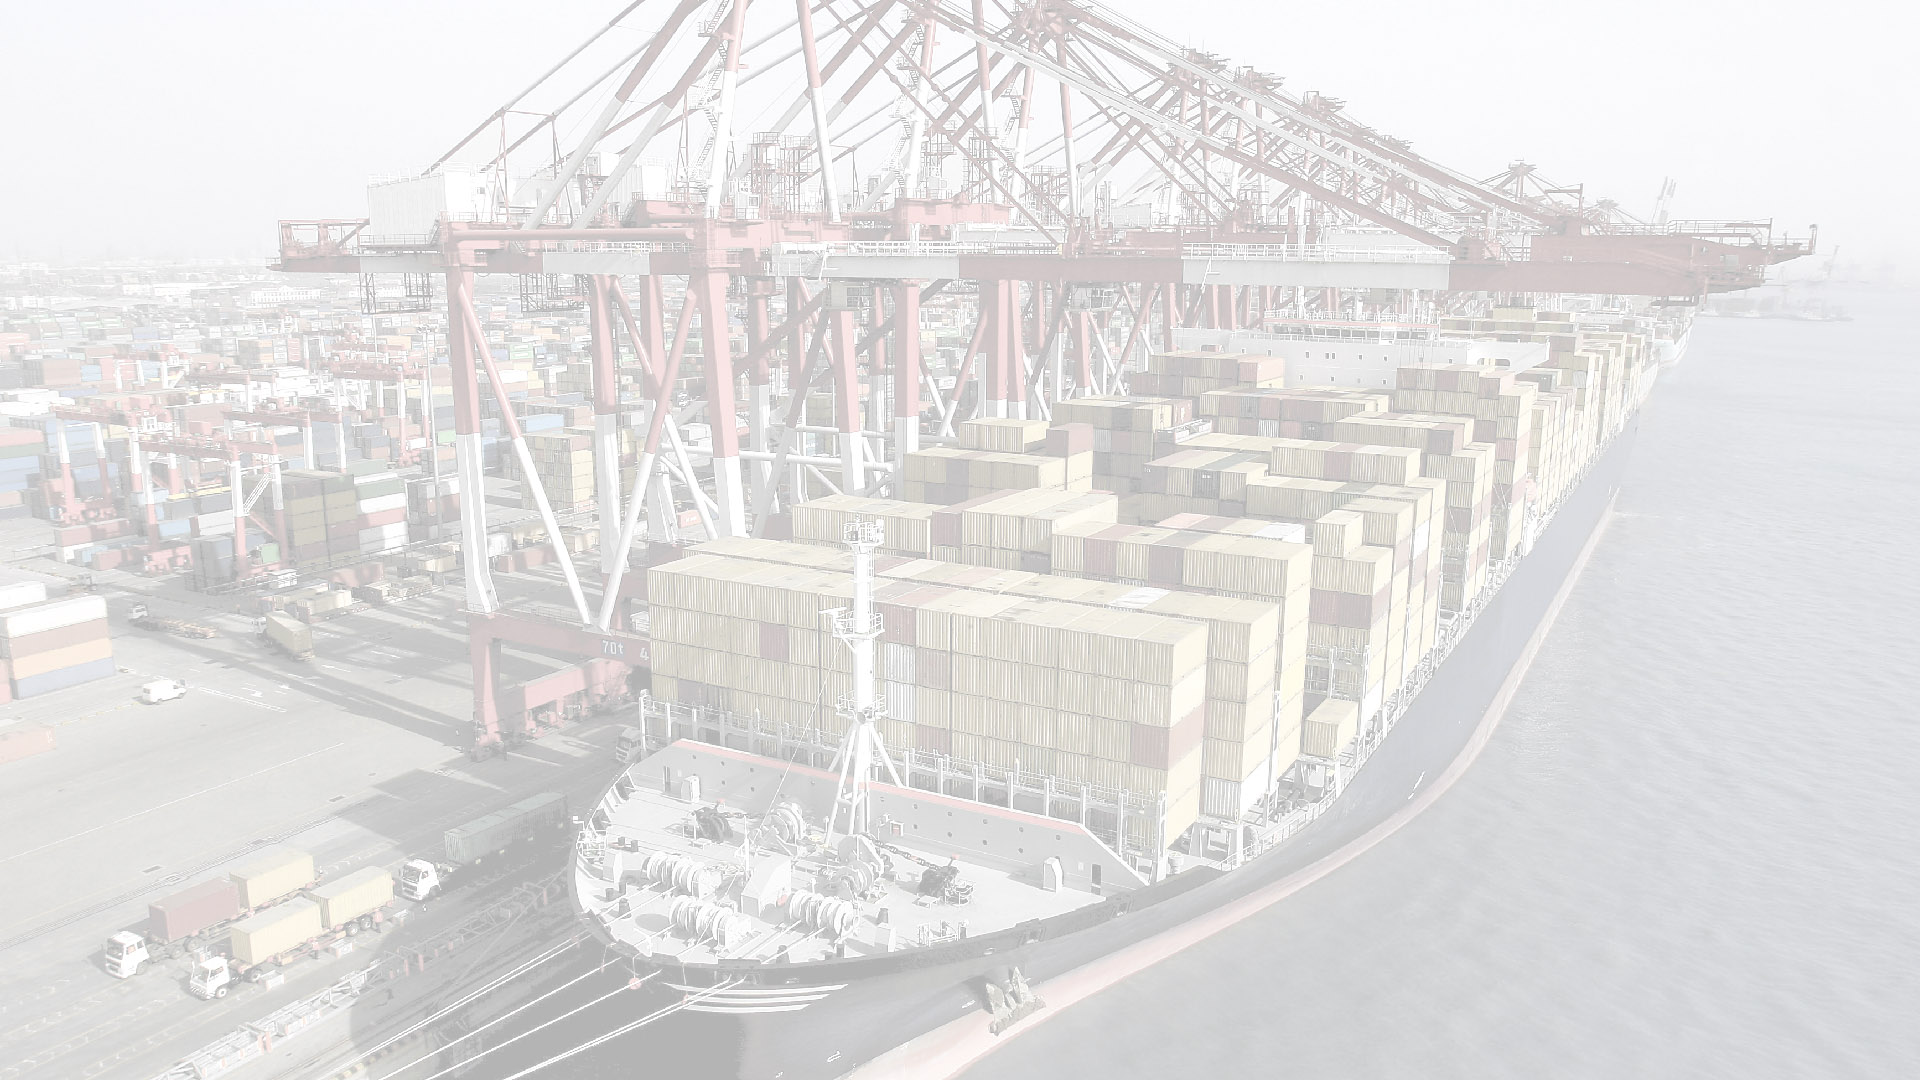 MobileDOCK for Shipping Ports